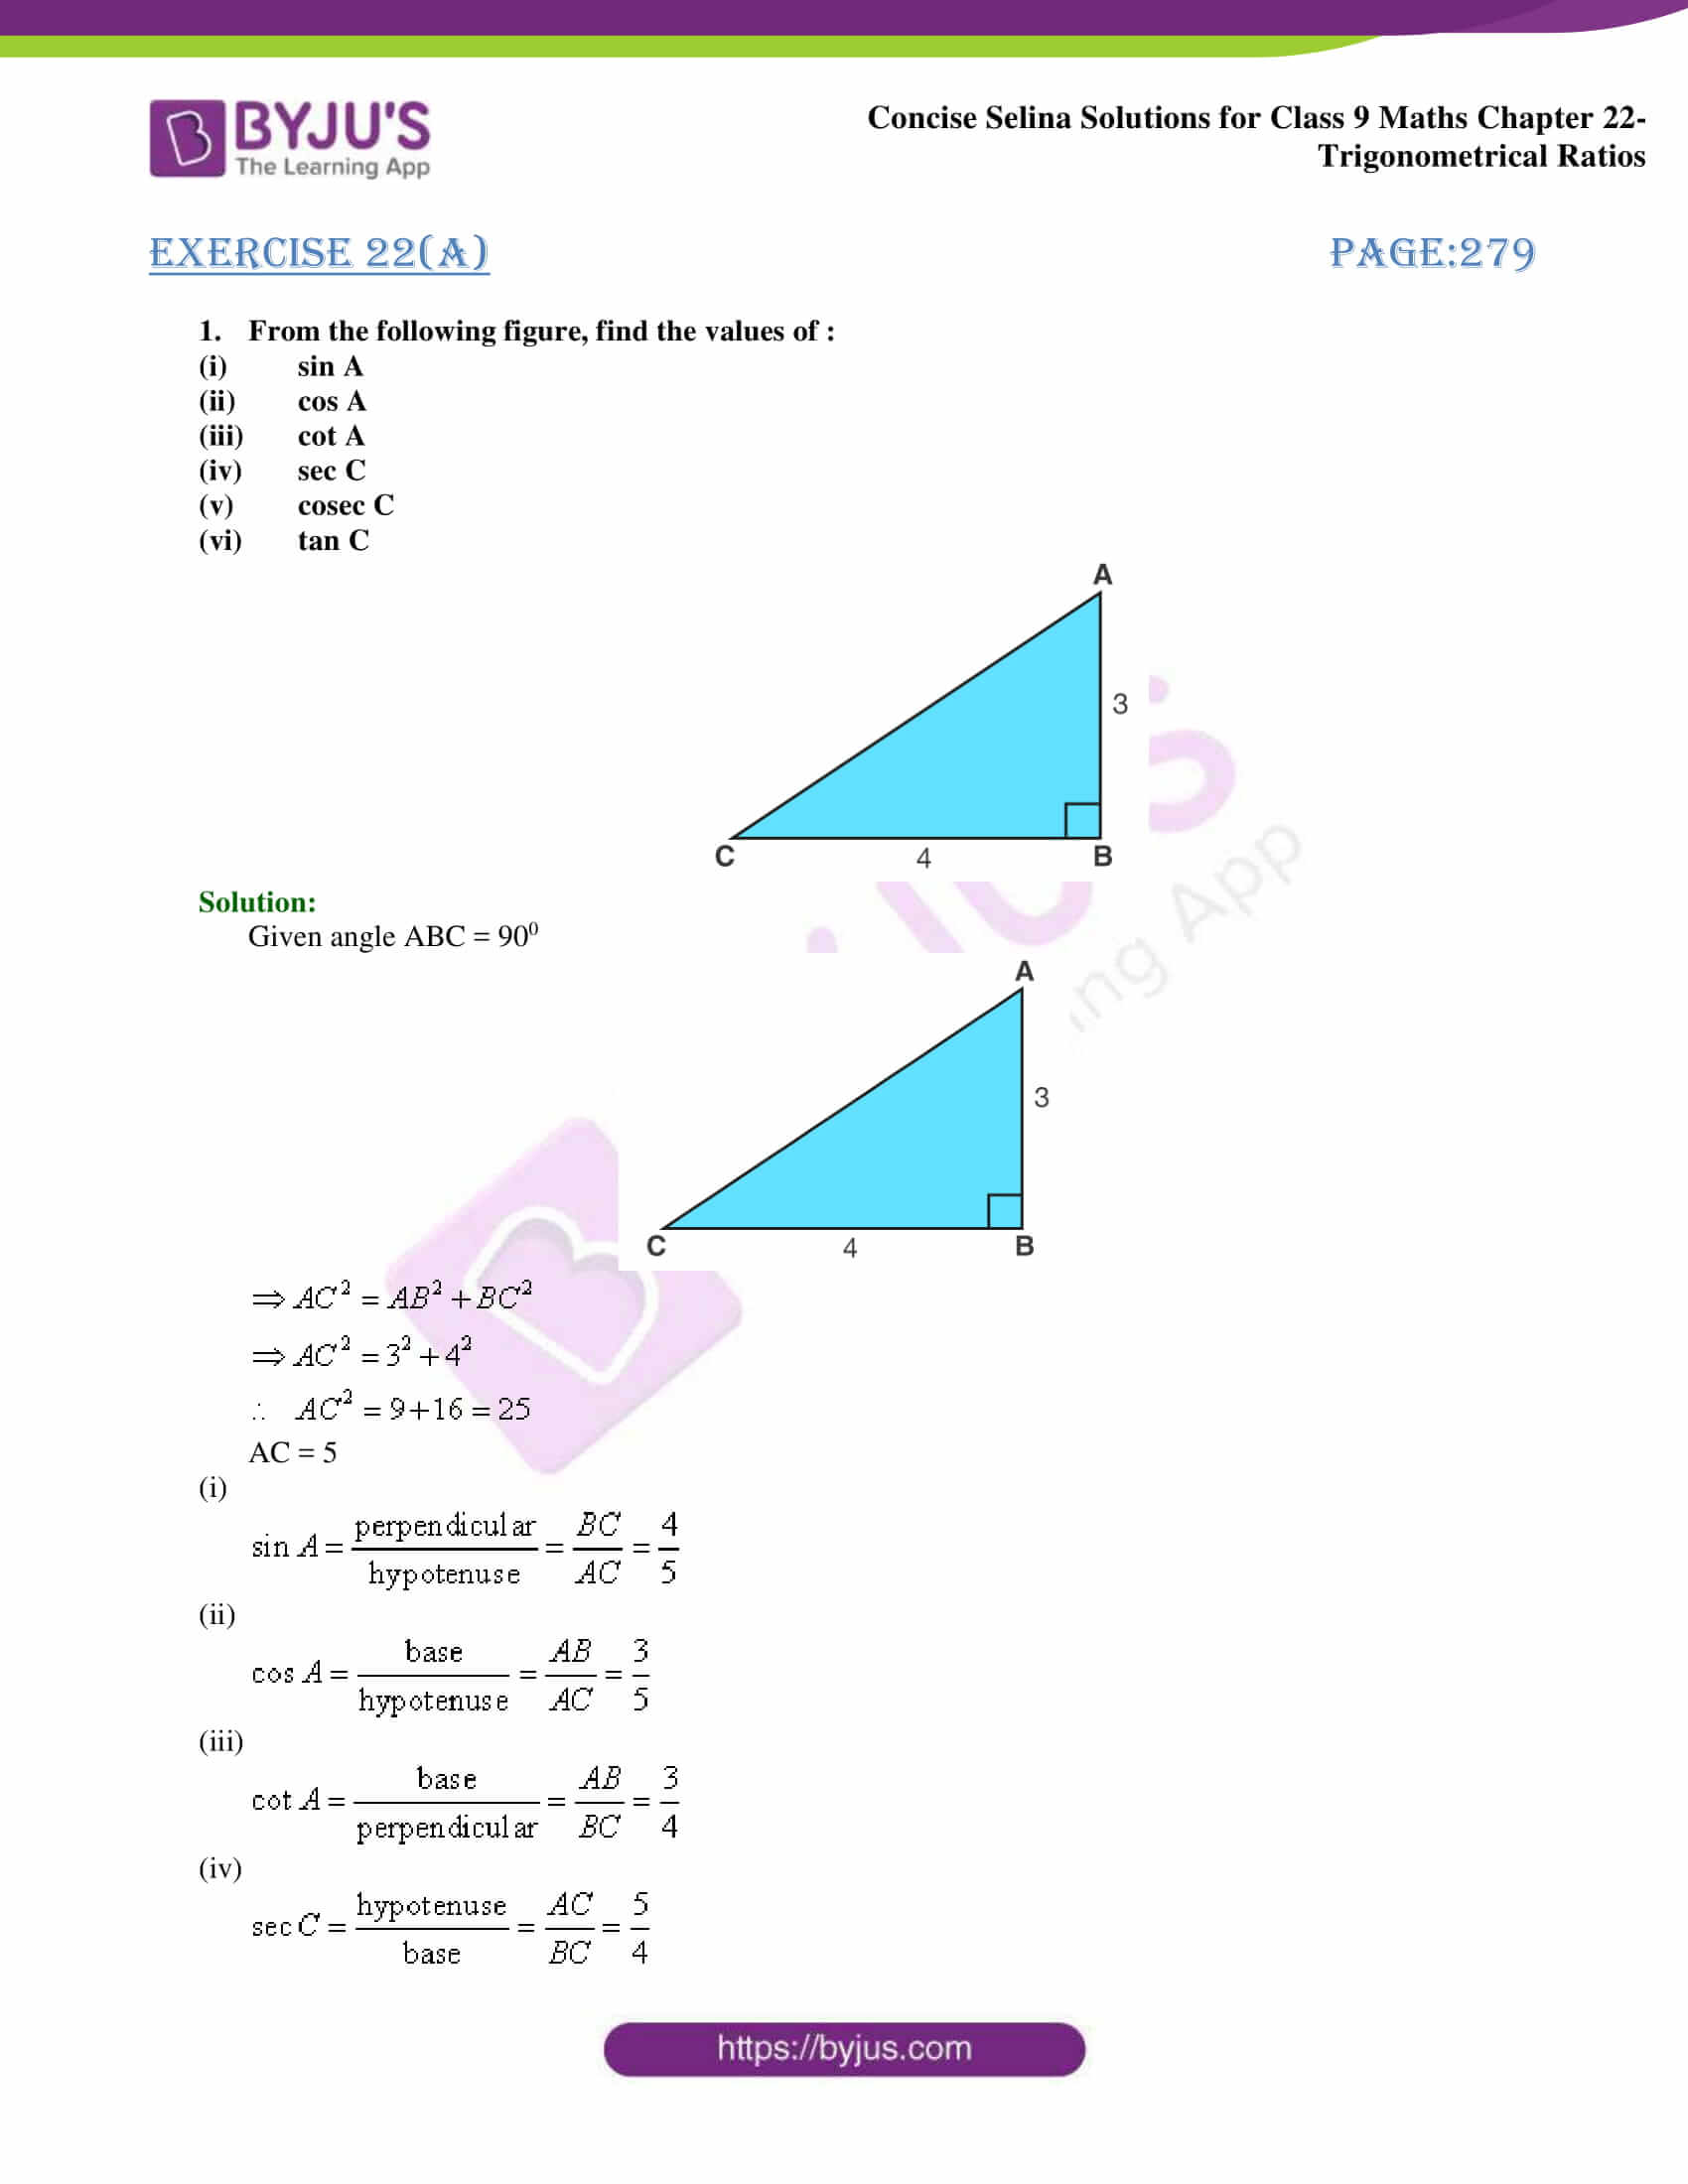 Concise Selina Solutions Class 9 Maths Chapter 22 Trigonometrical Ratios part 01